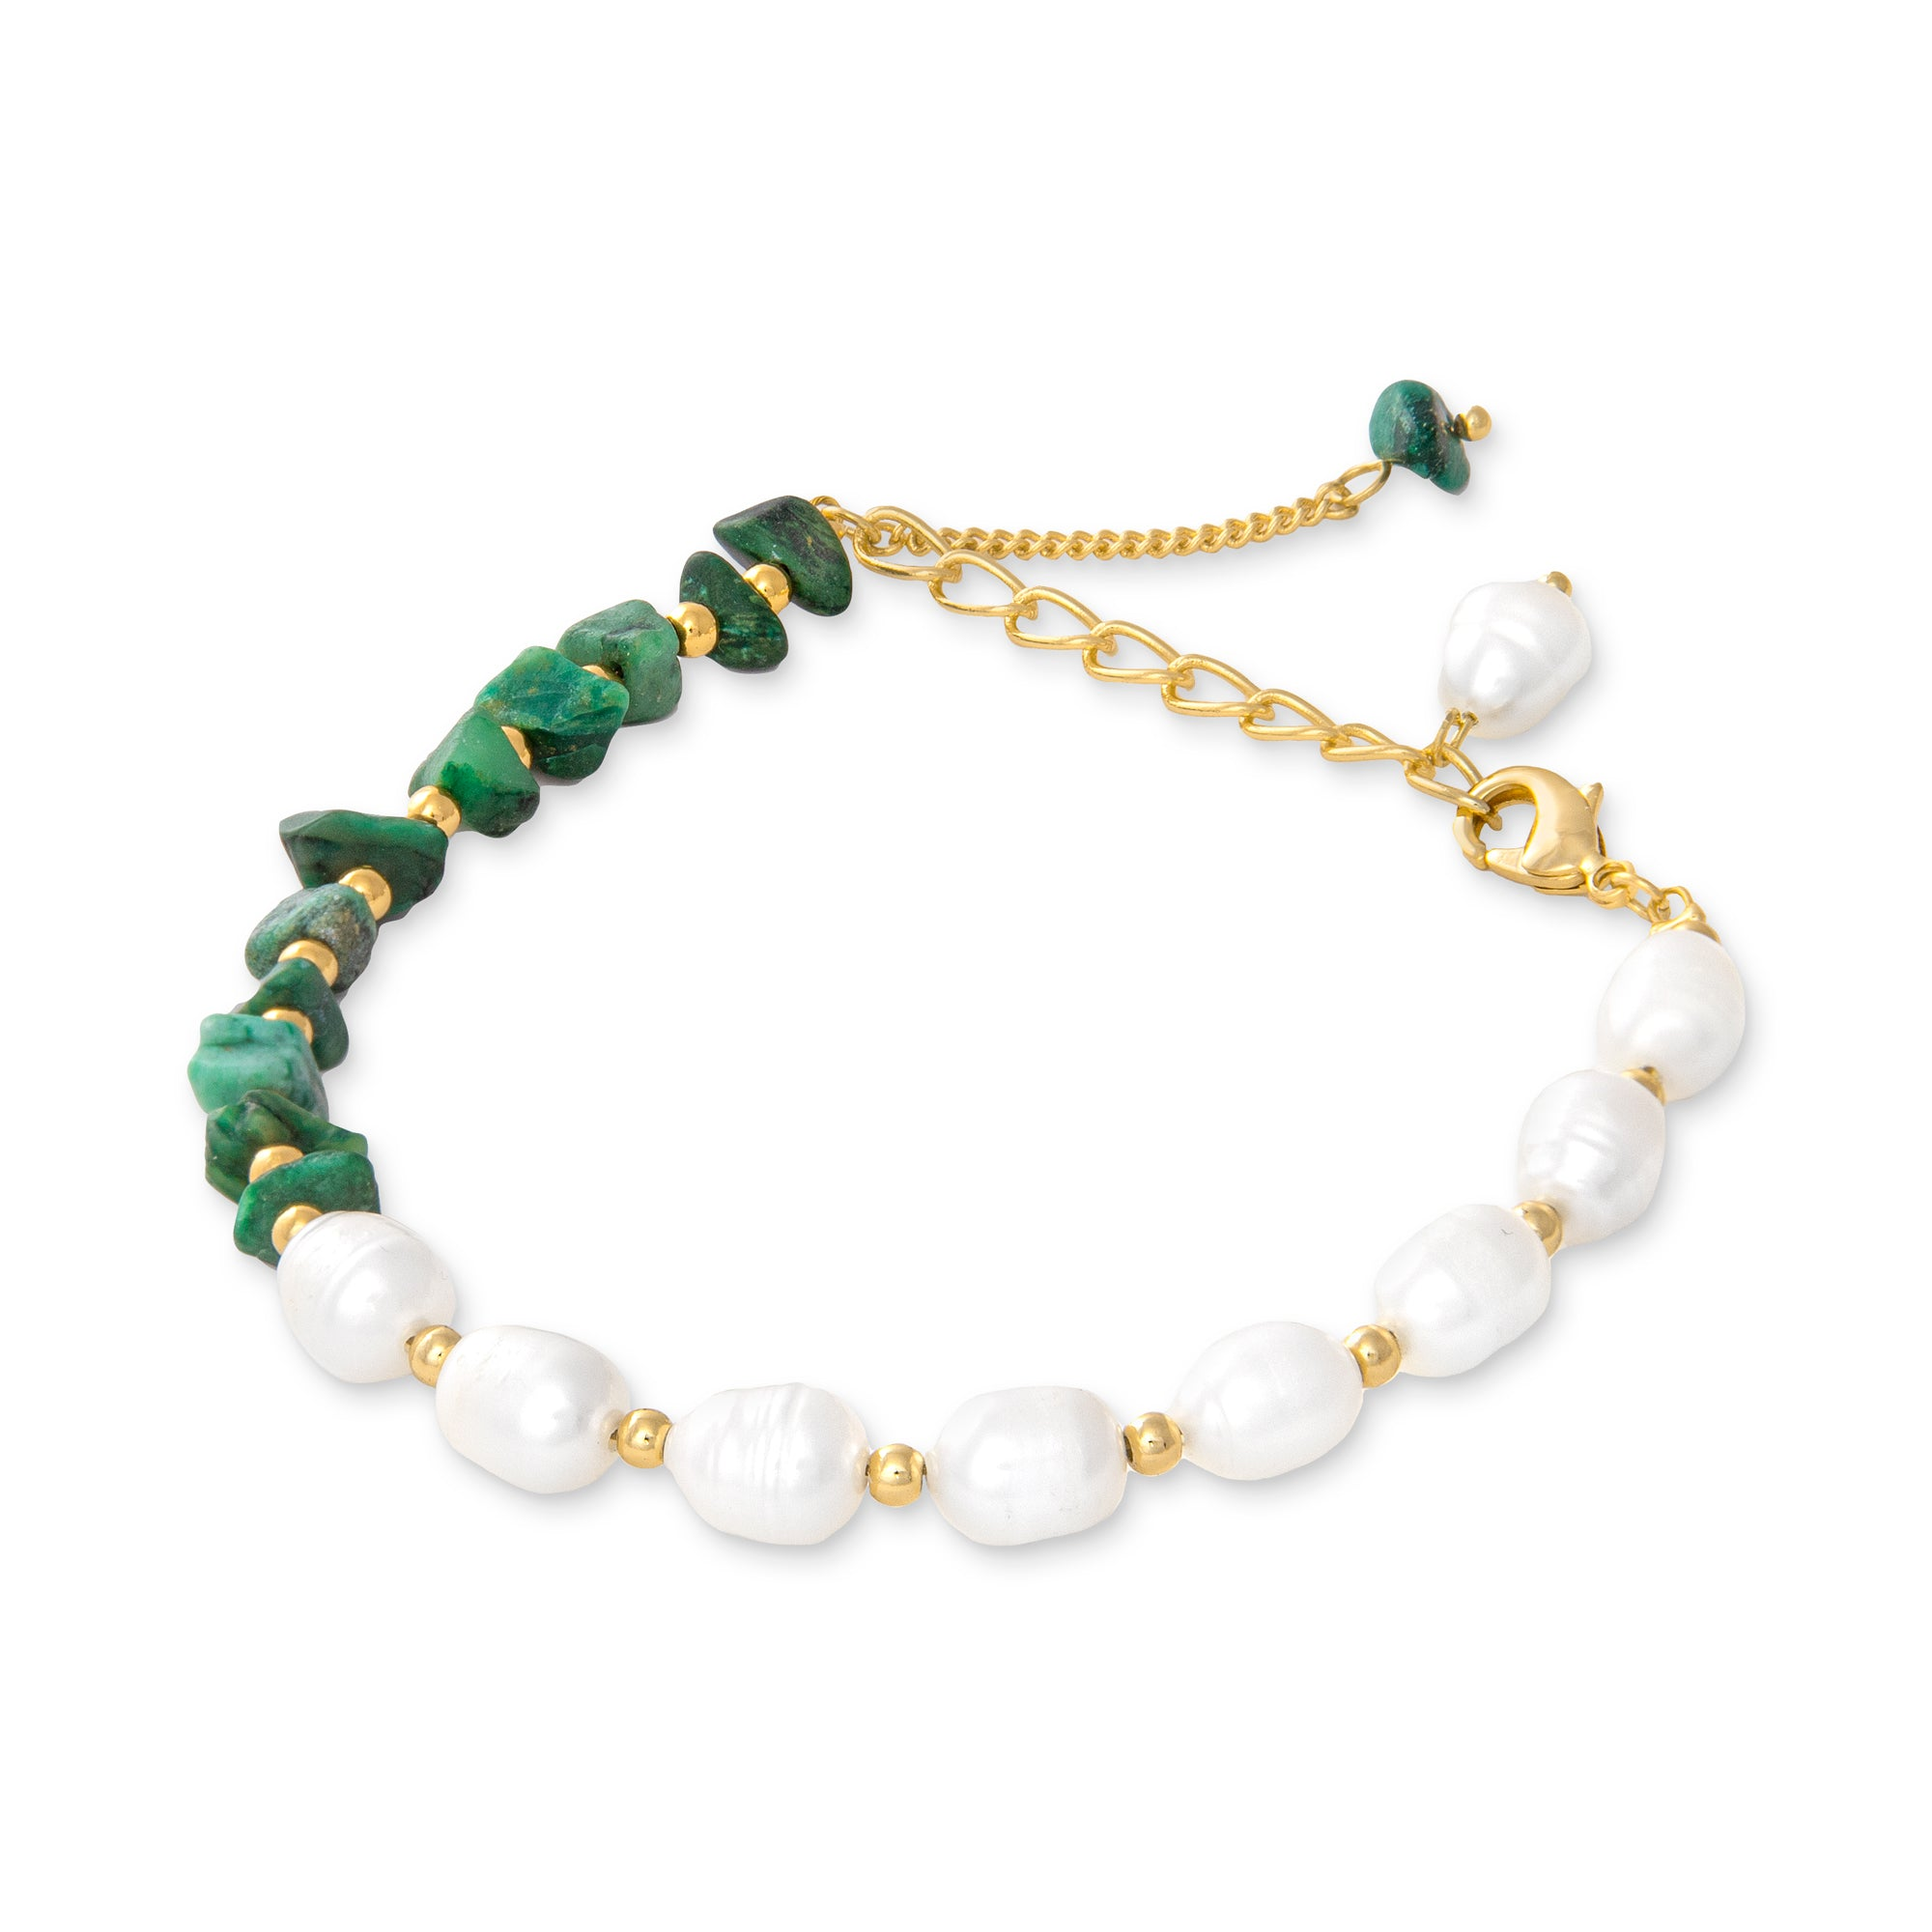 THE CAROLEE (Green Onyx)